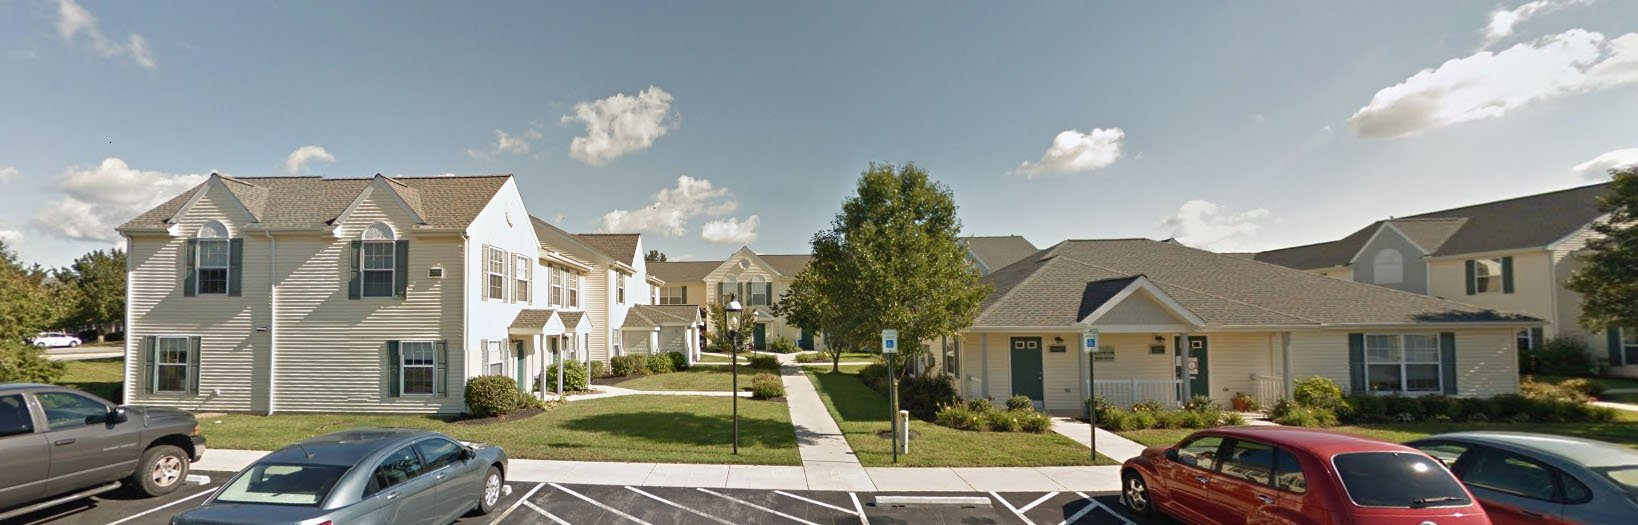 Affordable Housing in Chambersburg, PA | RentalHousingDeals com